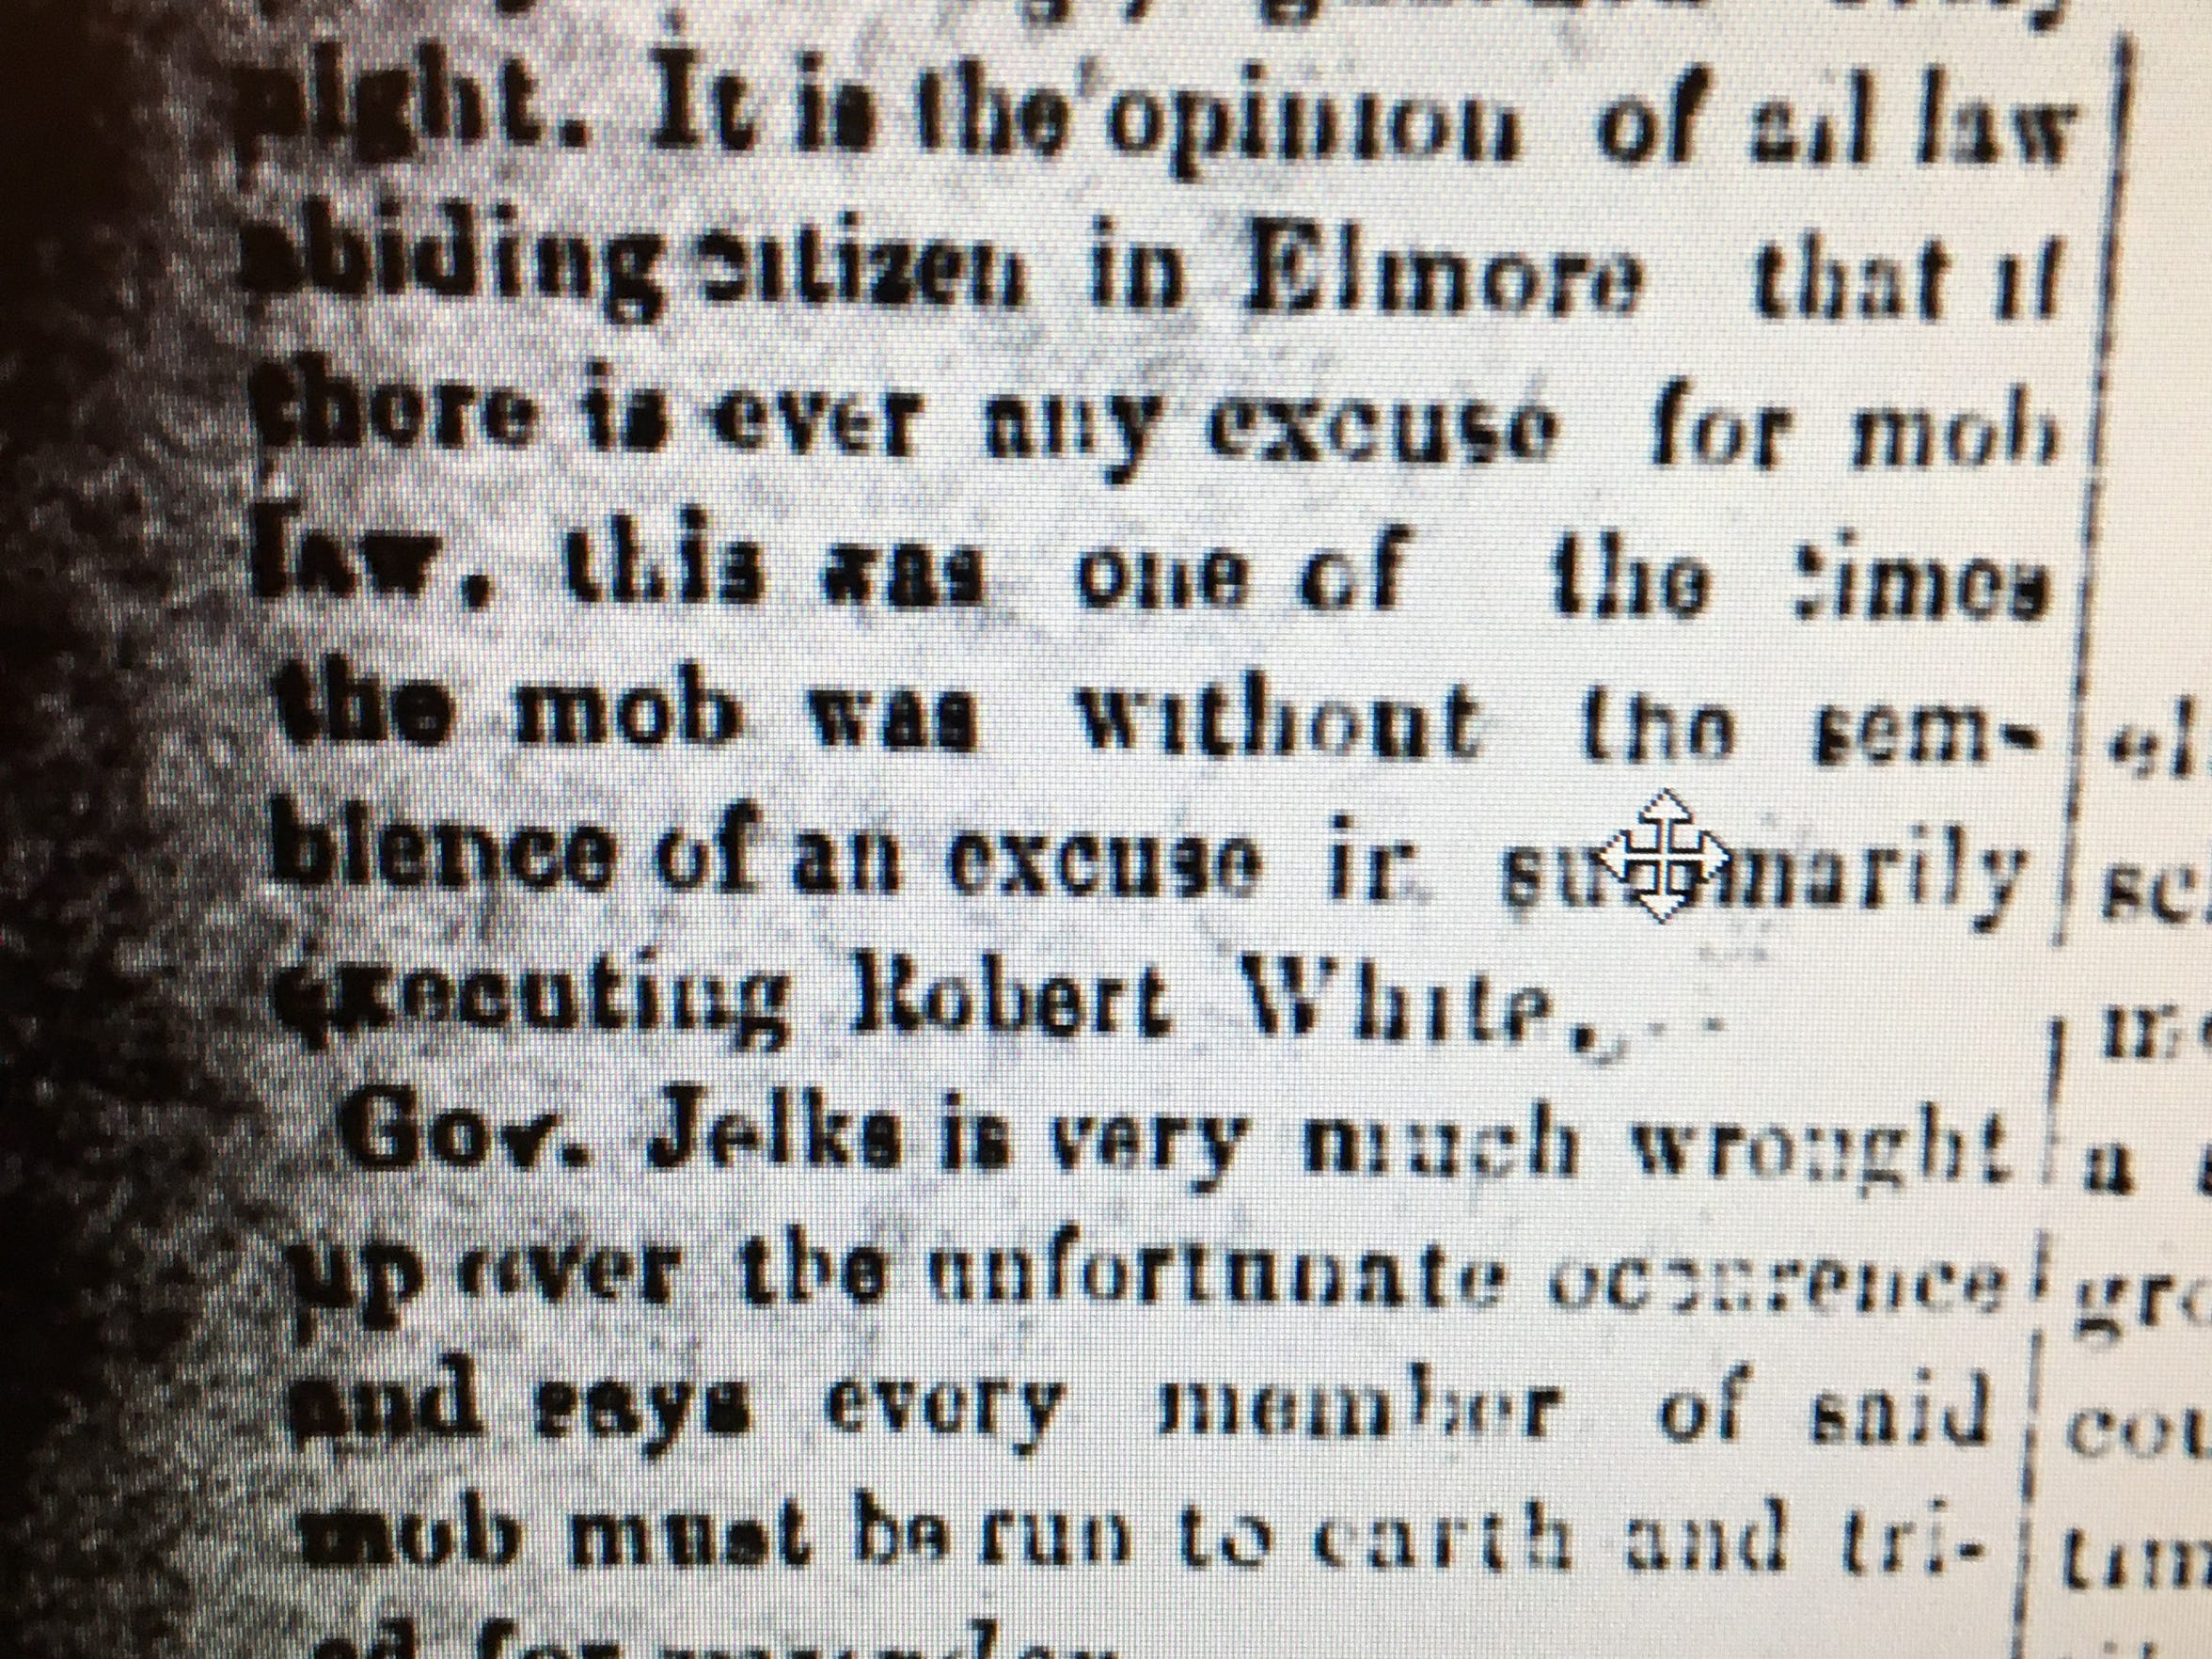 "The Weekly Herald wrote on July 11, 1901 that ""every member of said mob"" that lynched Robin White ""must be run to earth and tried for murder."""